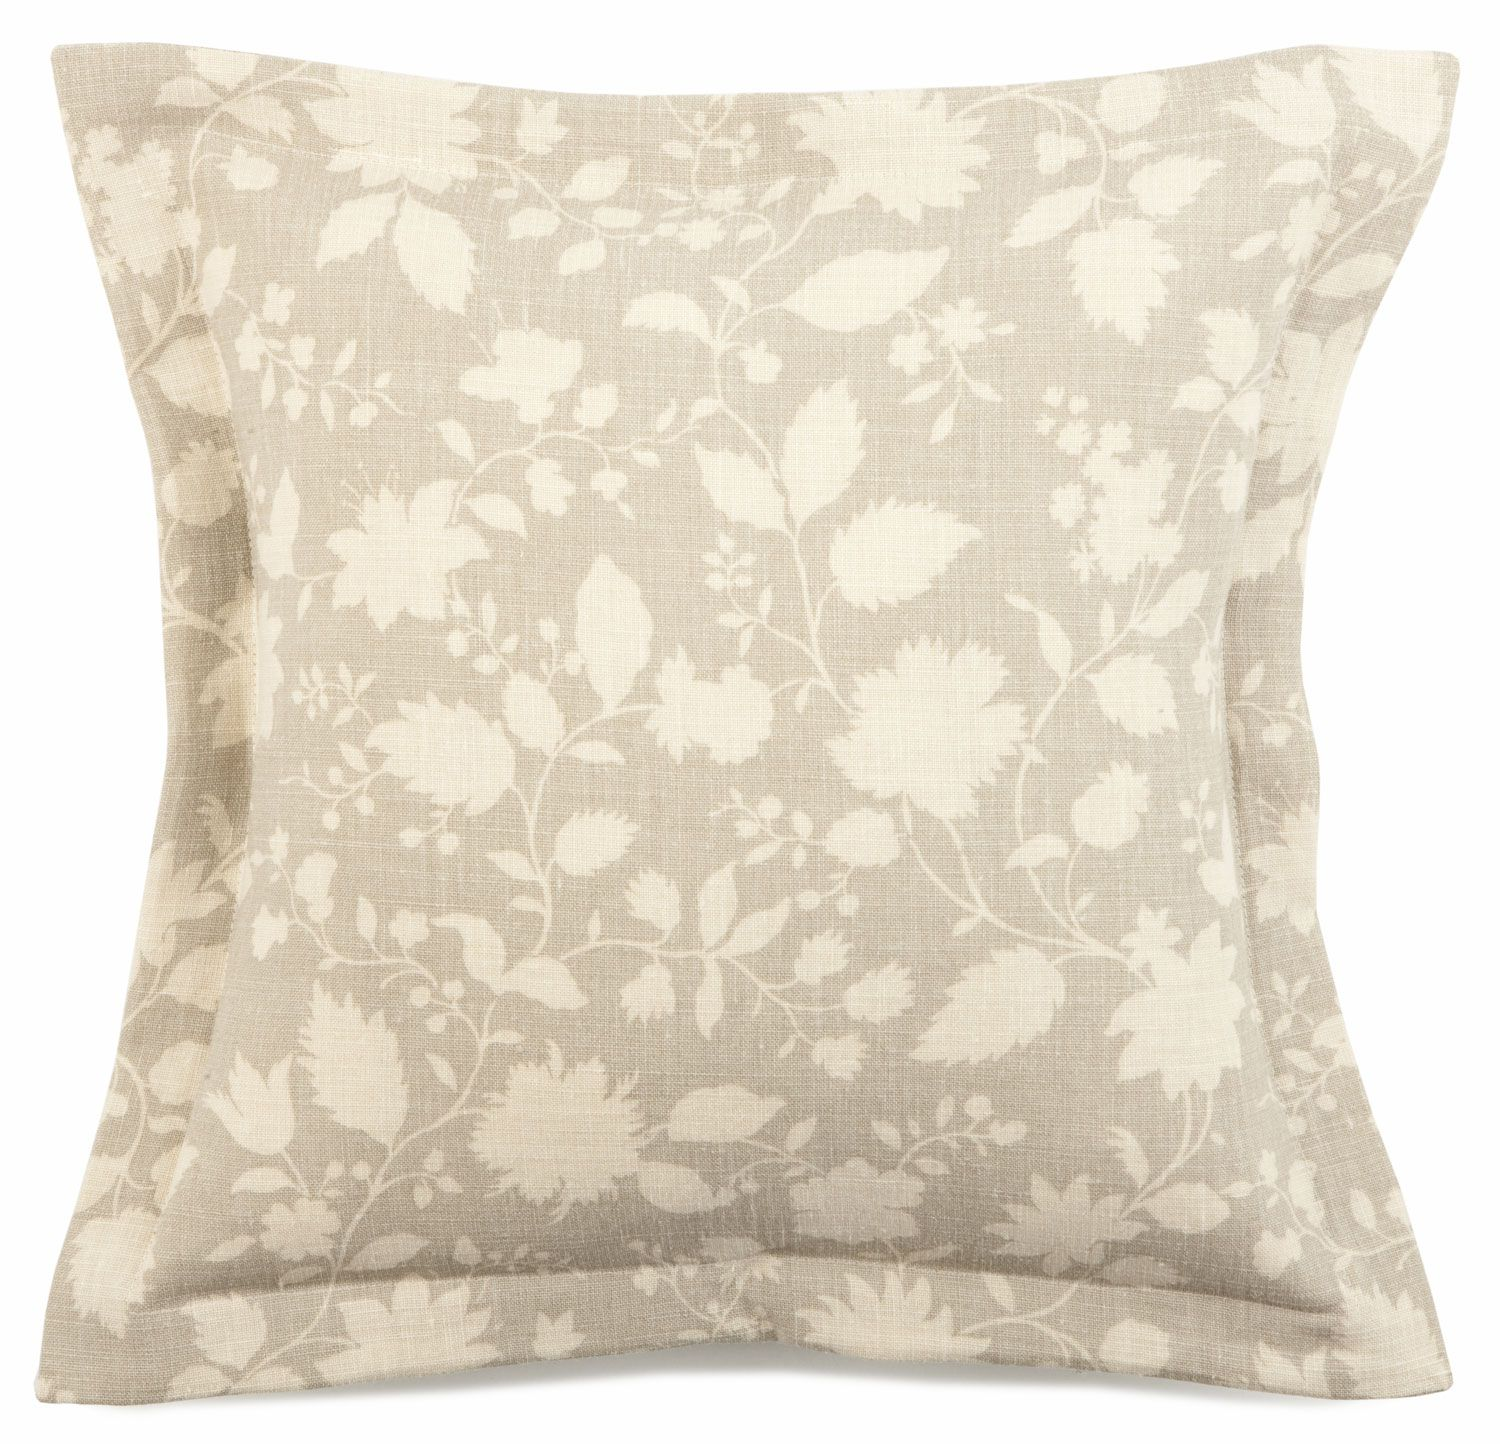 Oxford edge cushion Types of cushion's finishing #scatter ...